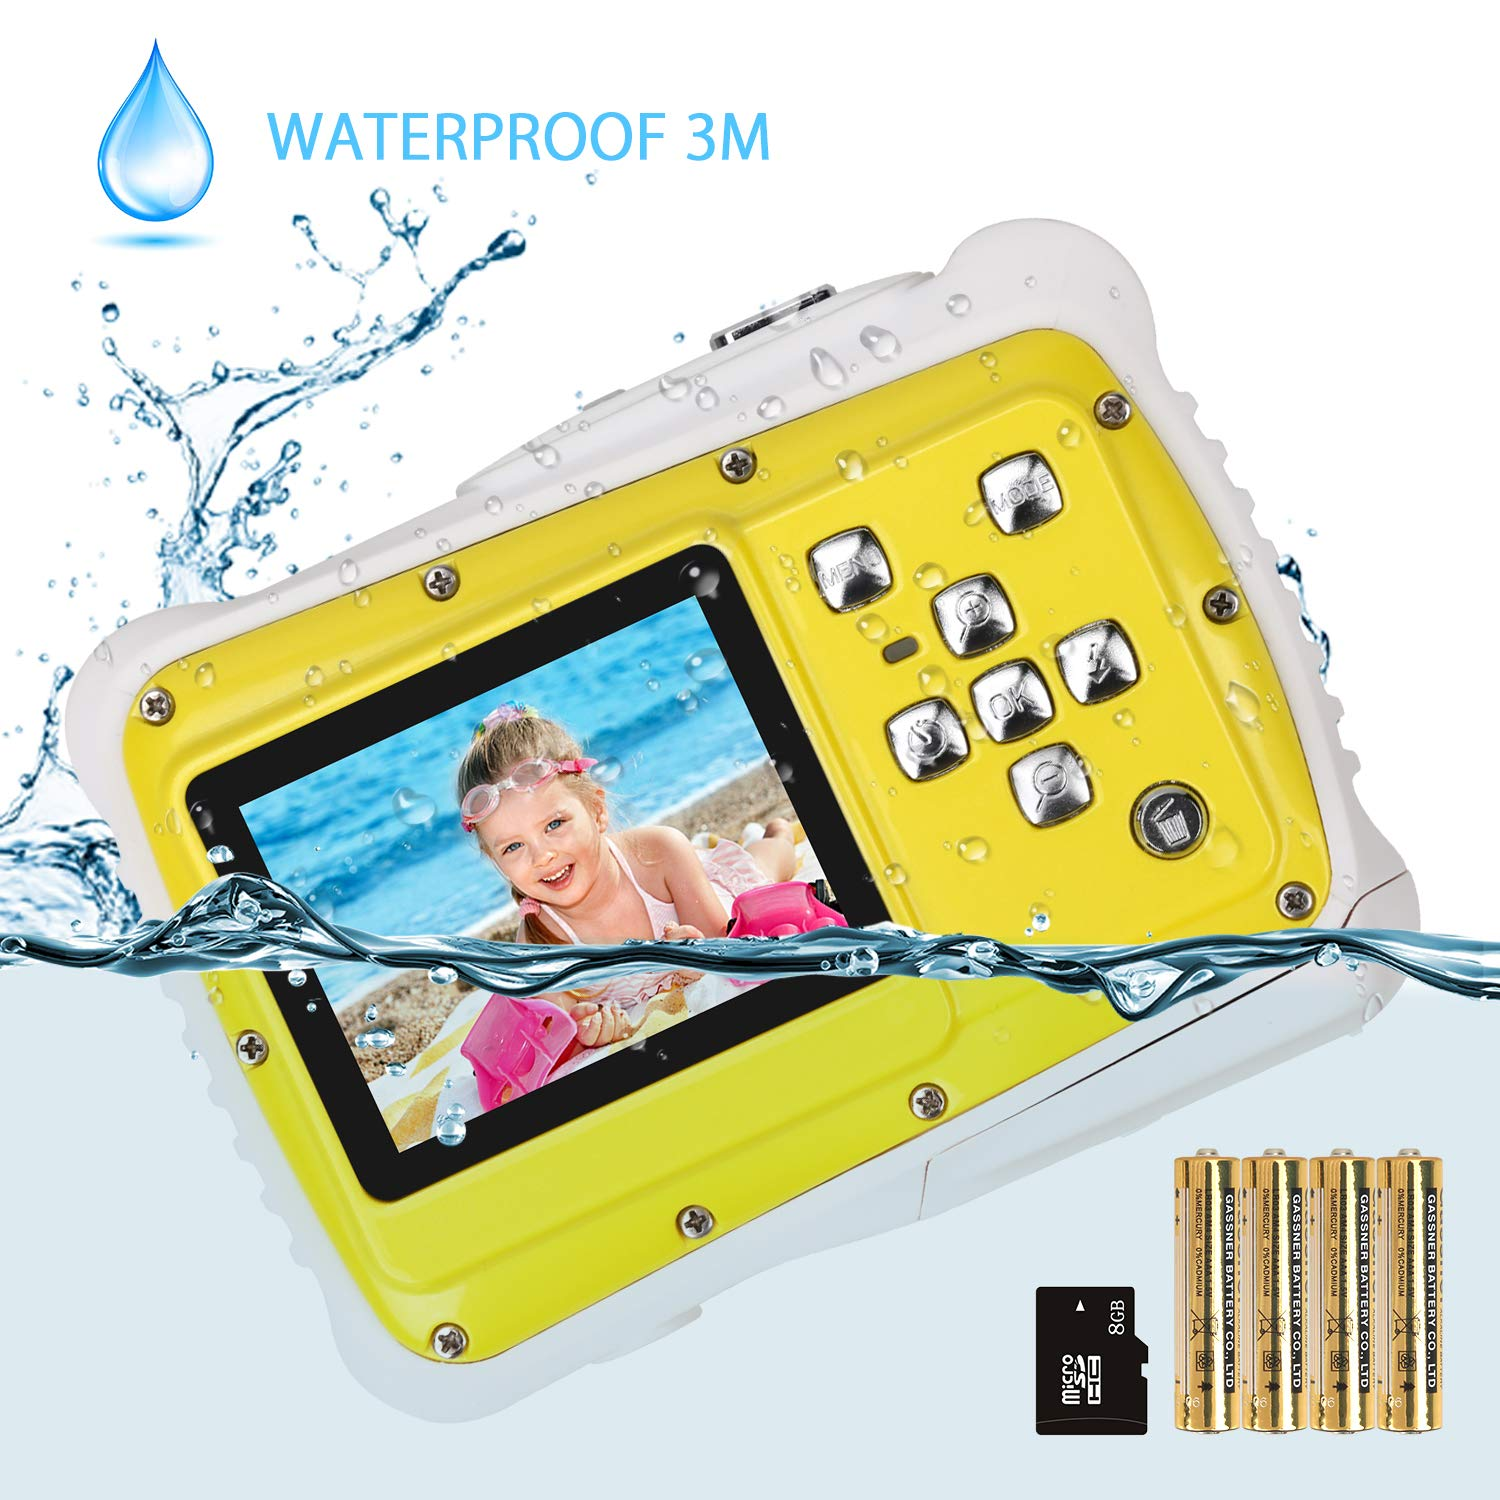 Kids Camera, Digital Waterproof Camera for Children with 3M Waterproof, 2 Inch LCD Screen, 12MP HD Resolution, 8X Digital Zoom and Flash with A 8G SD Card and Non-Rechargeable Battery -  Vine …